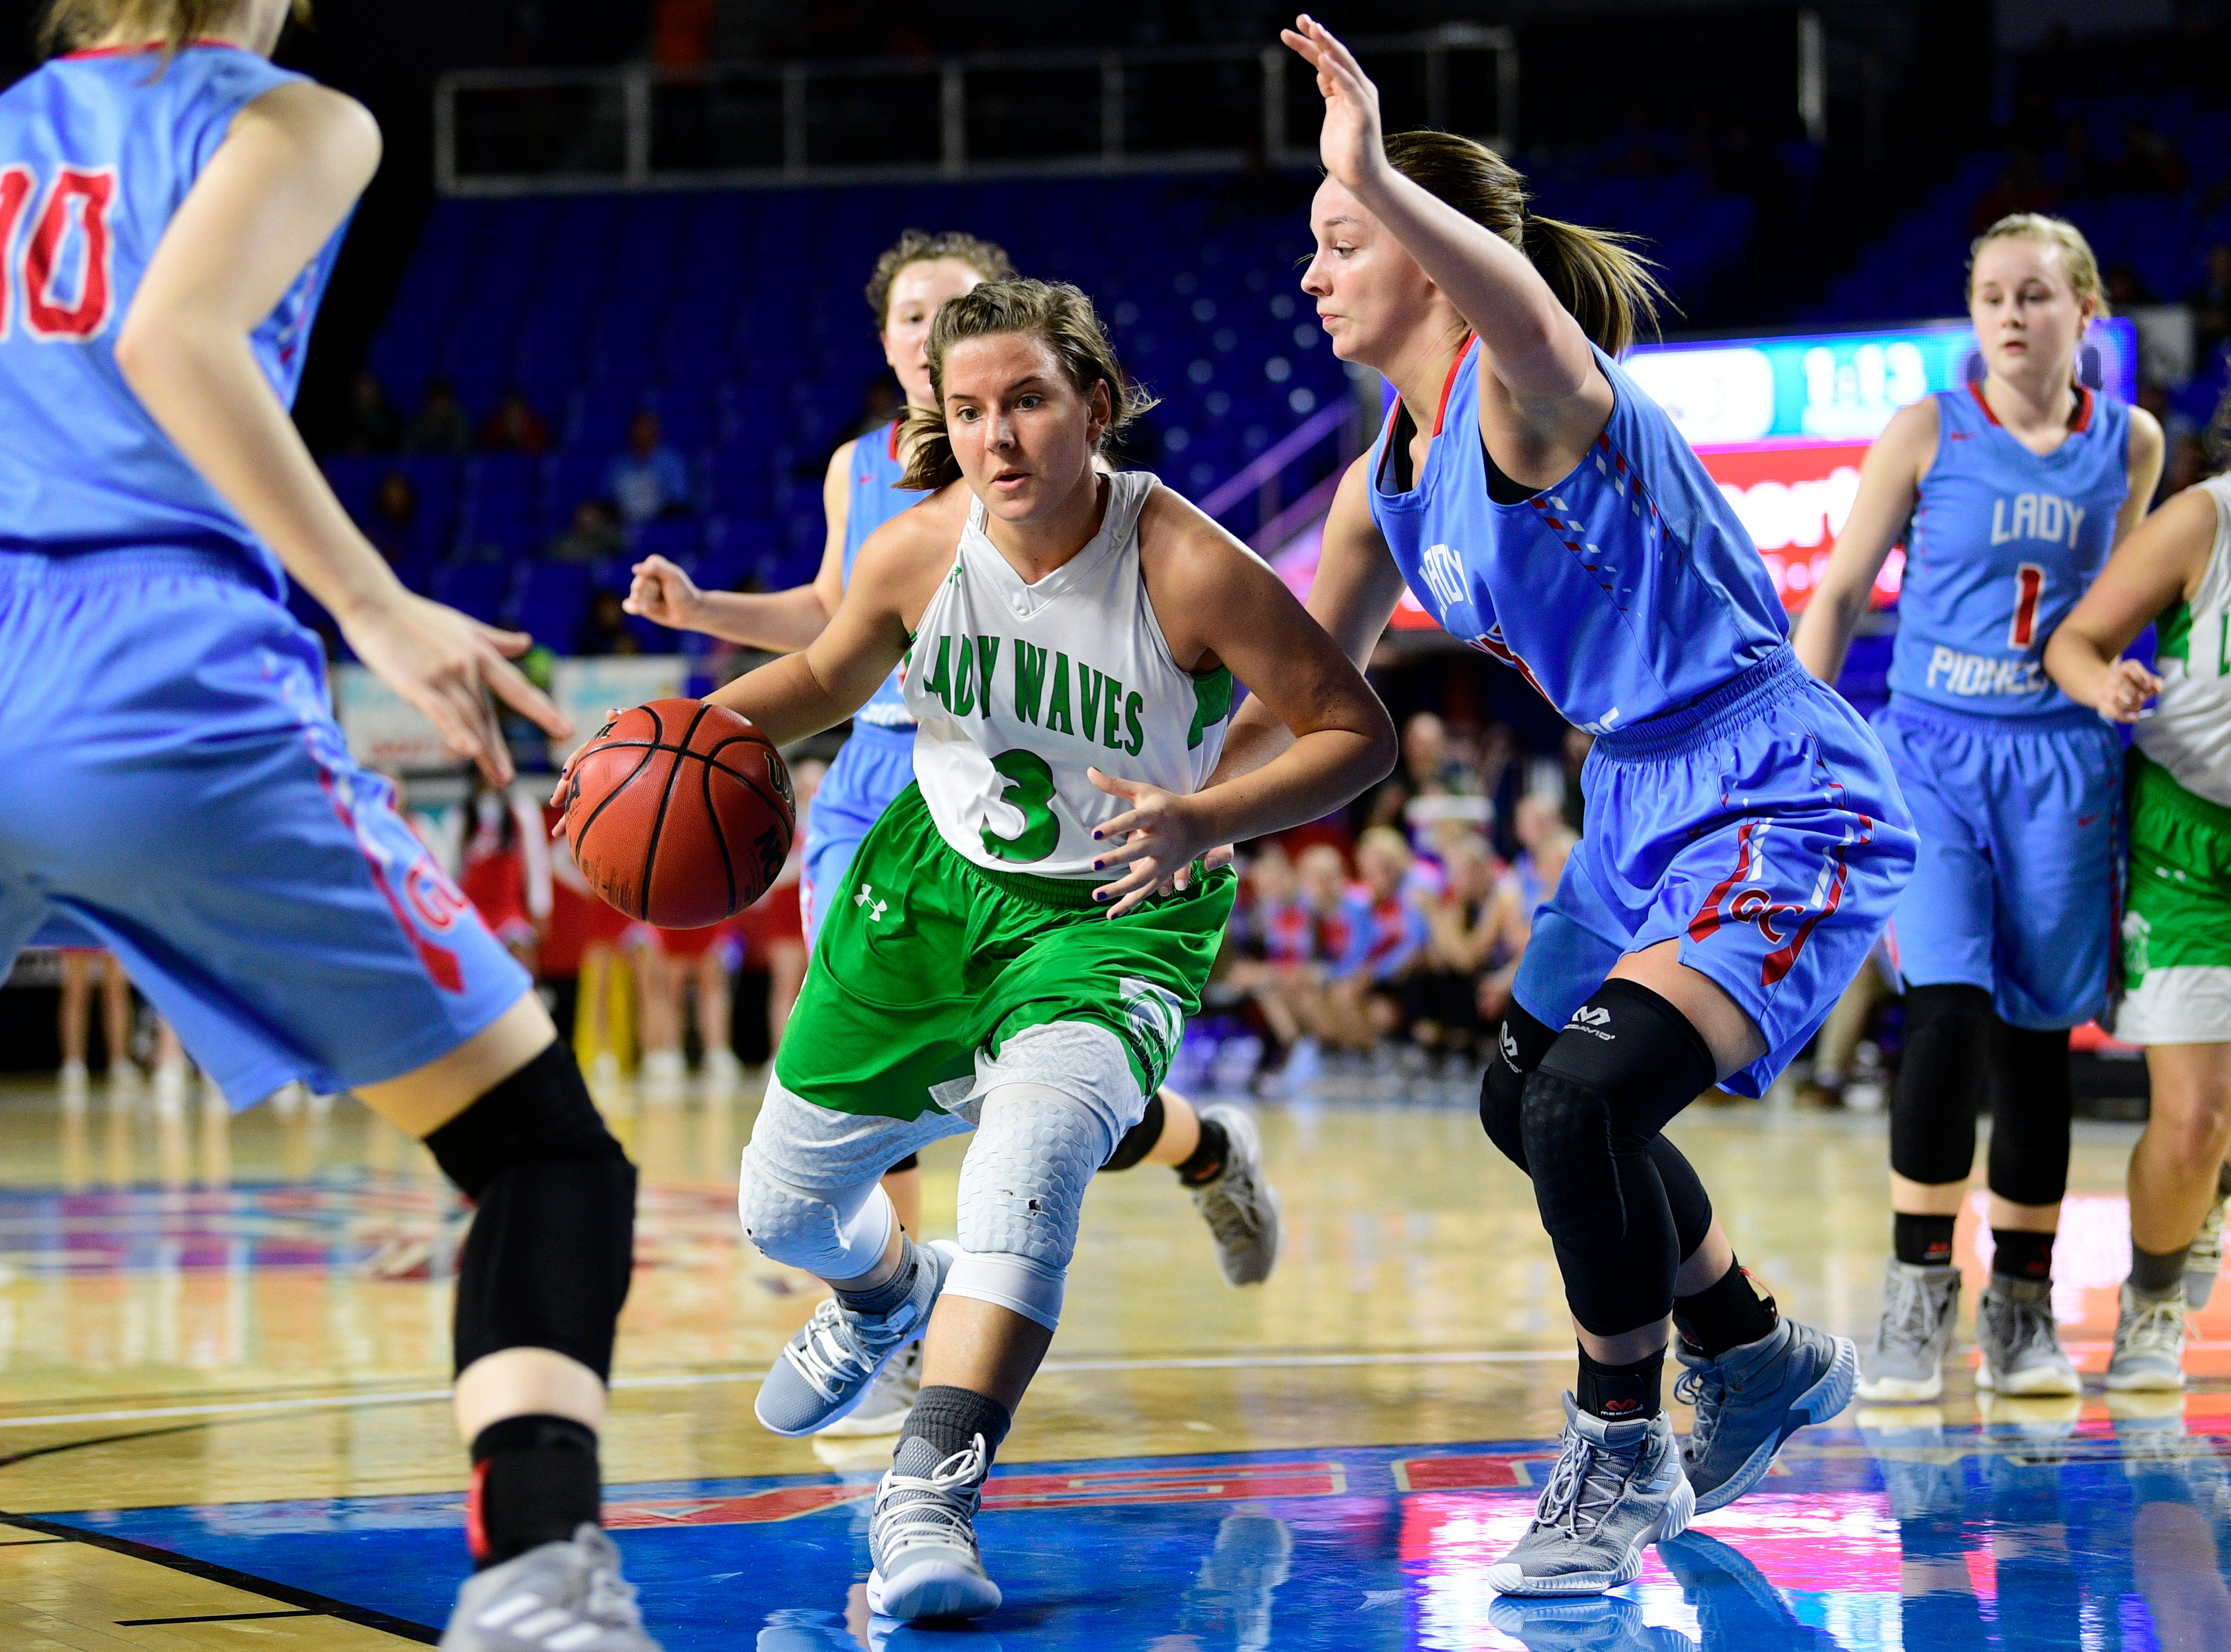 Midway's Rebecca Lemasters (3) looks for a way through the defense during a game between Midway and Gibson County at the TSSAA girls state tournament at the Murphy Center in Murfreesboro, Tennessee on Friday, March 8, 2019.